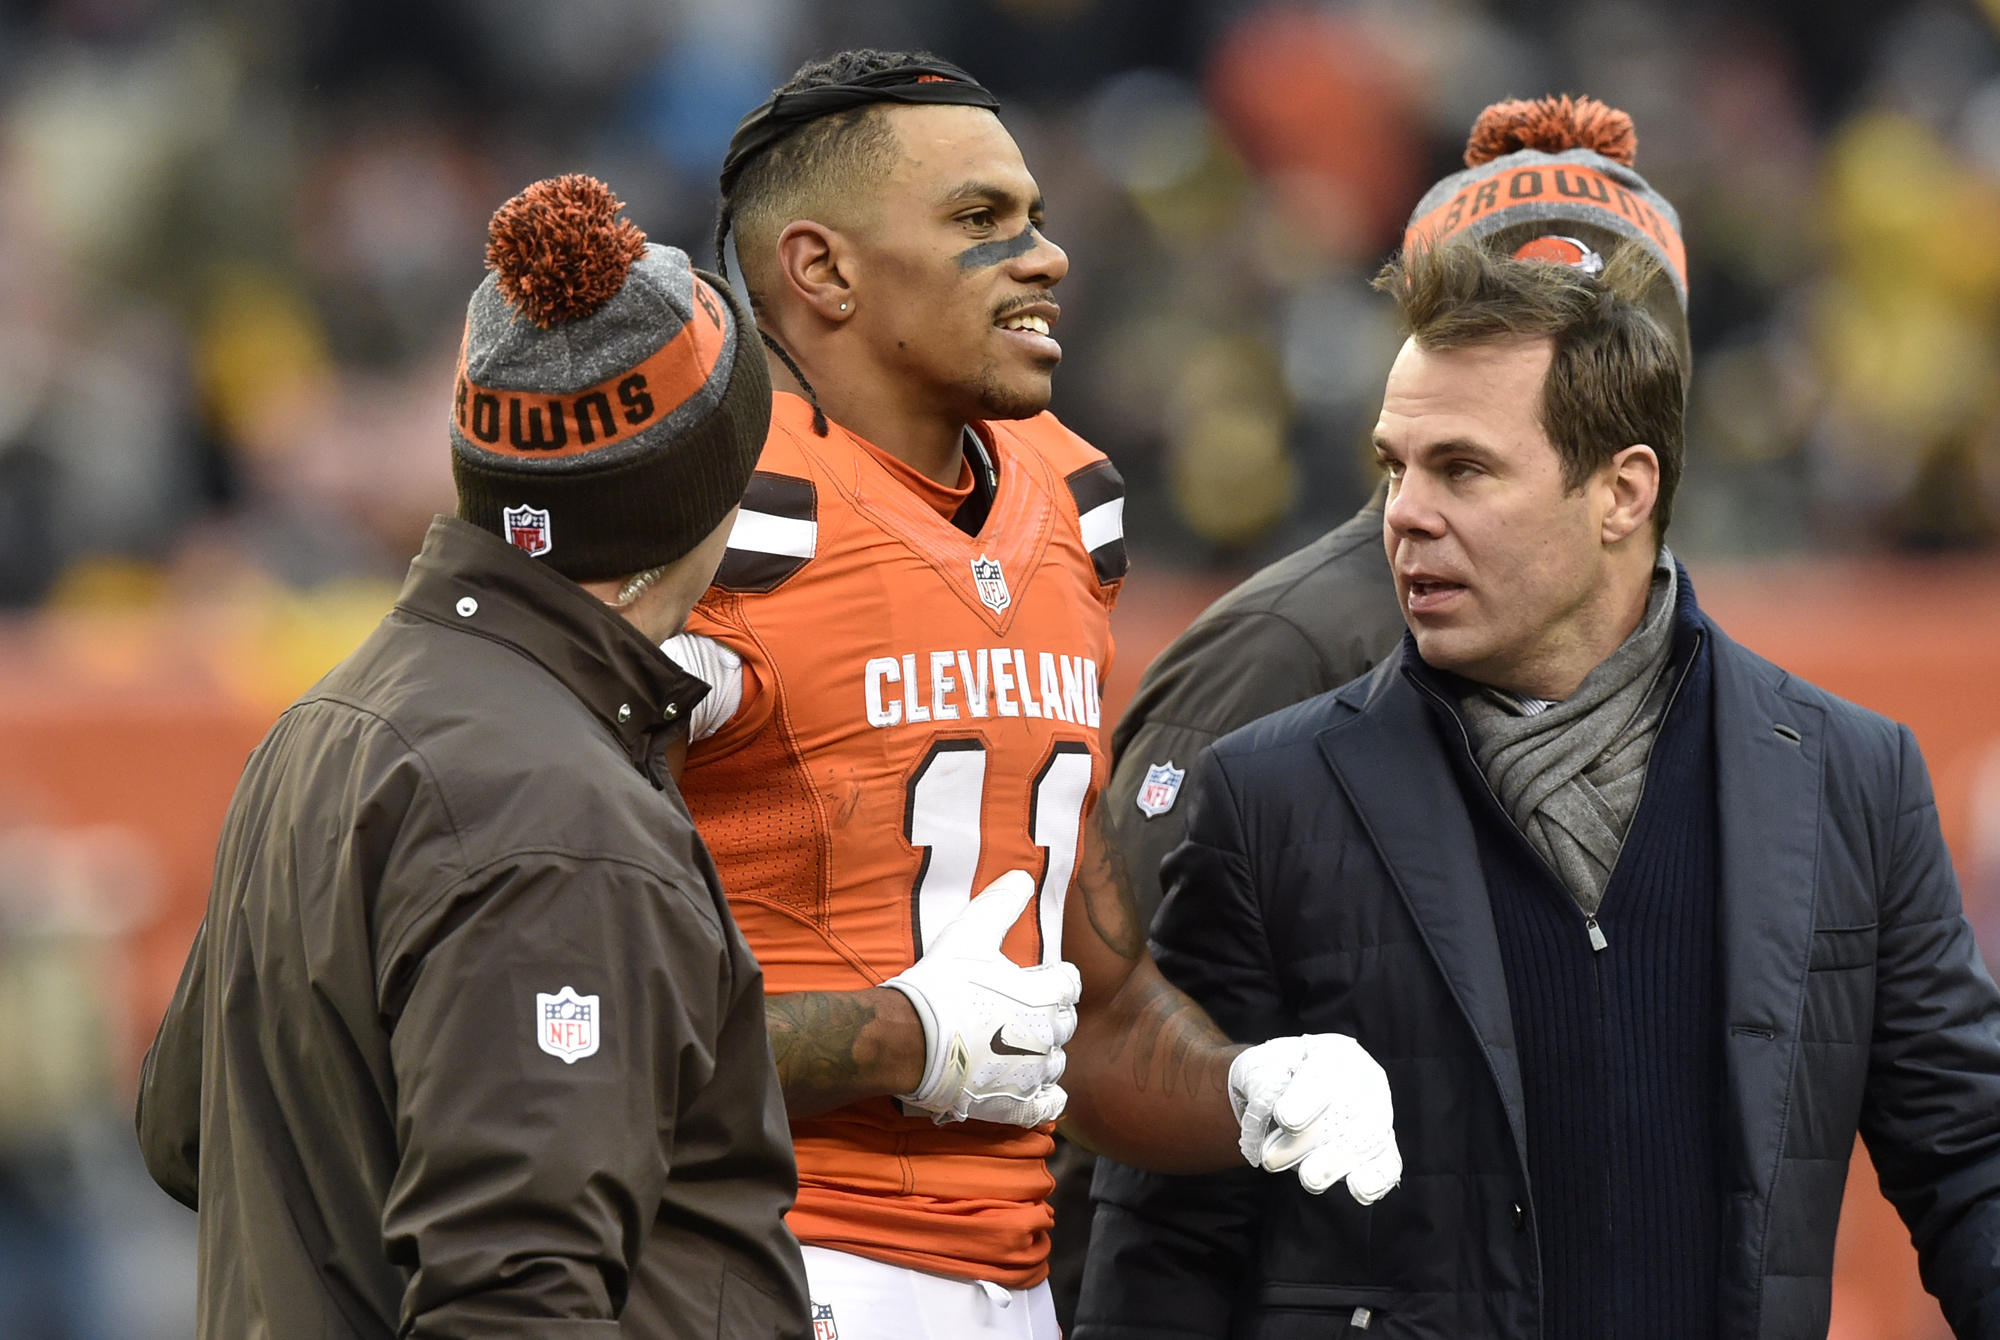 Cleveland Browns wide receiver Terrelle Pryor (11) is helped off the field after being injured on a play during the second half of an NFL football game against the Pittsburgh Steelers in Cleveland, Sunday, Nov. 20, 2016. The Steelers won 24-9. (AP Photo/D